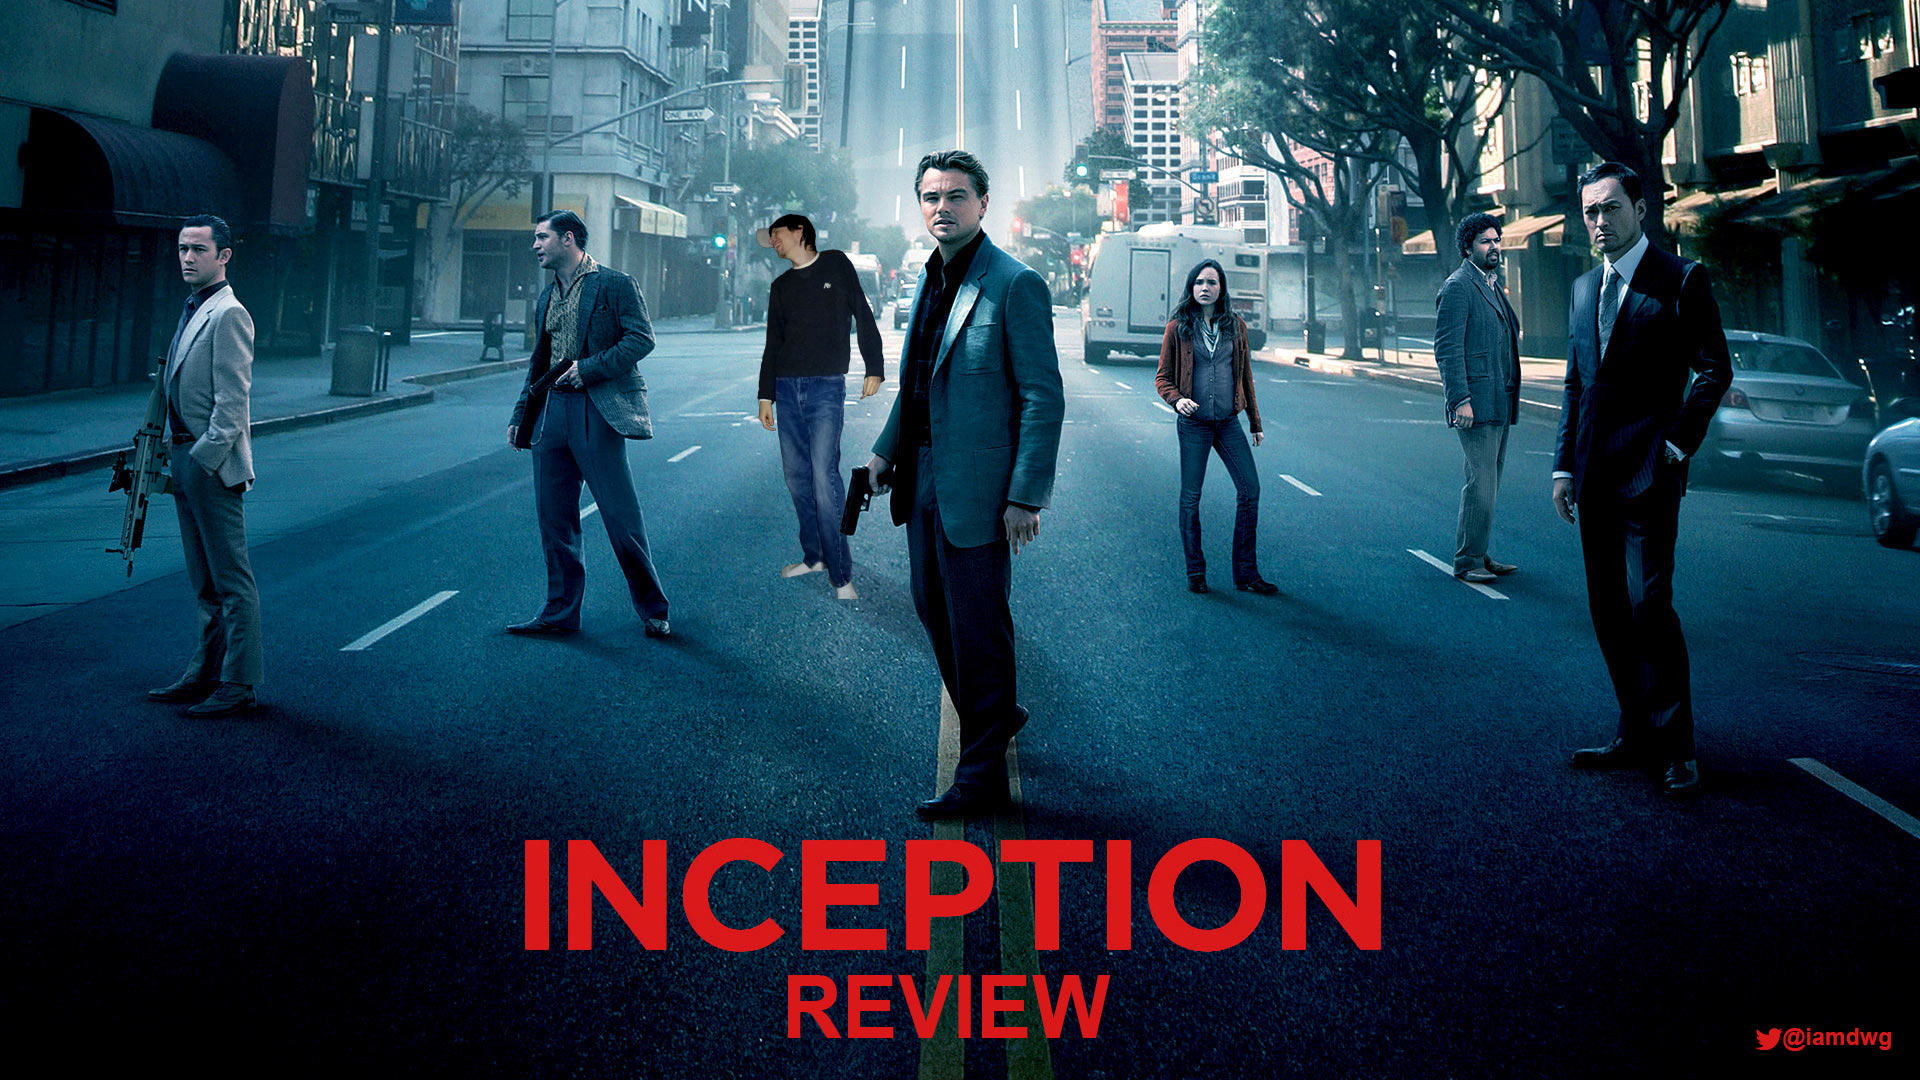 Inception (2010) folder icon by sornay on deviantart.